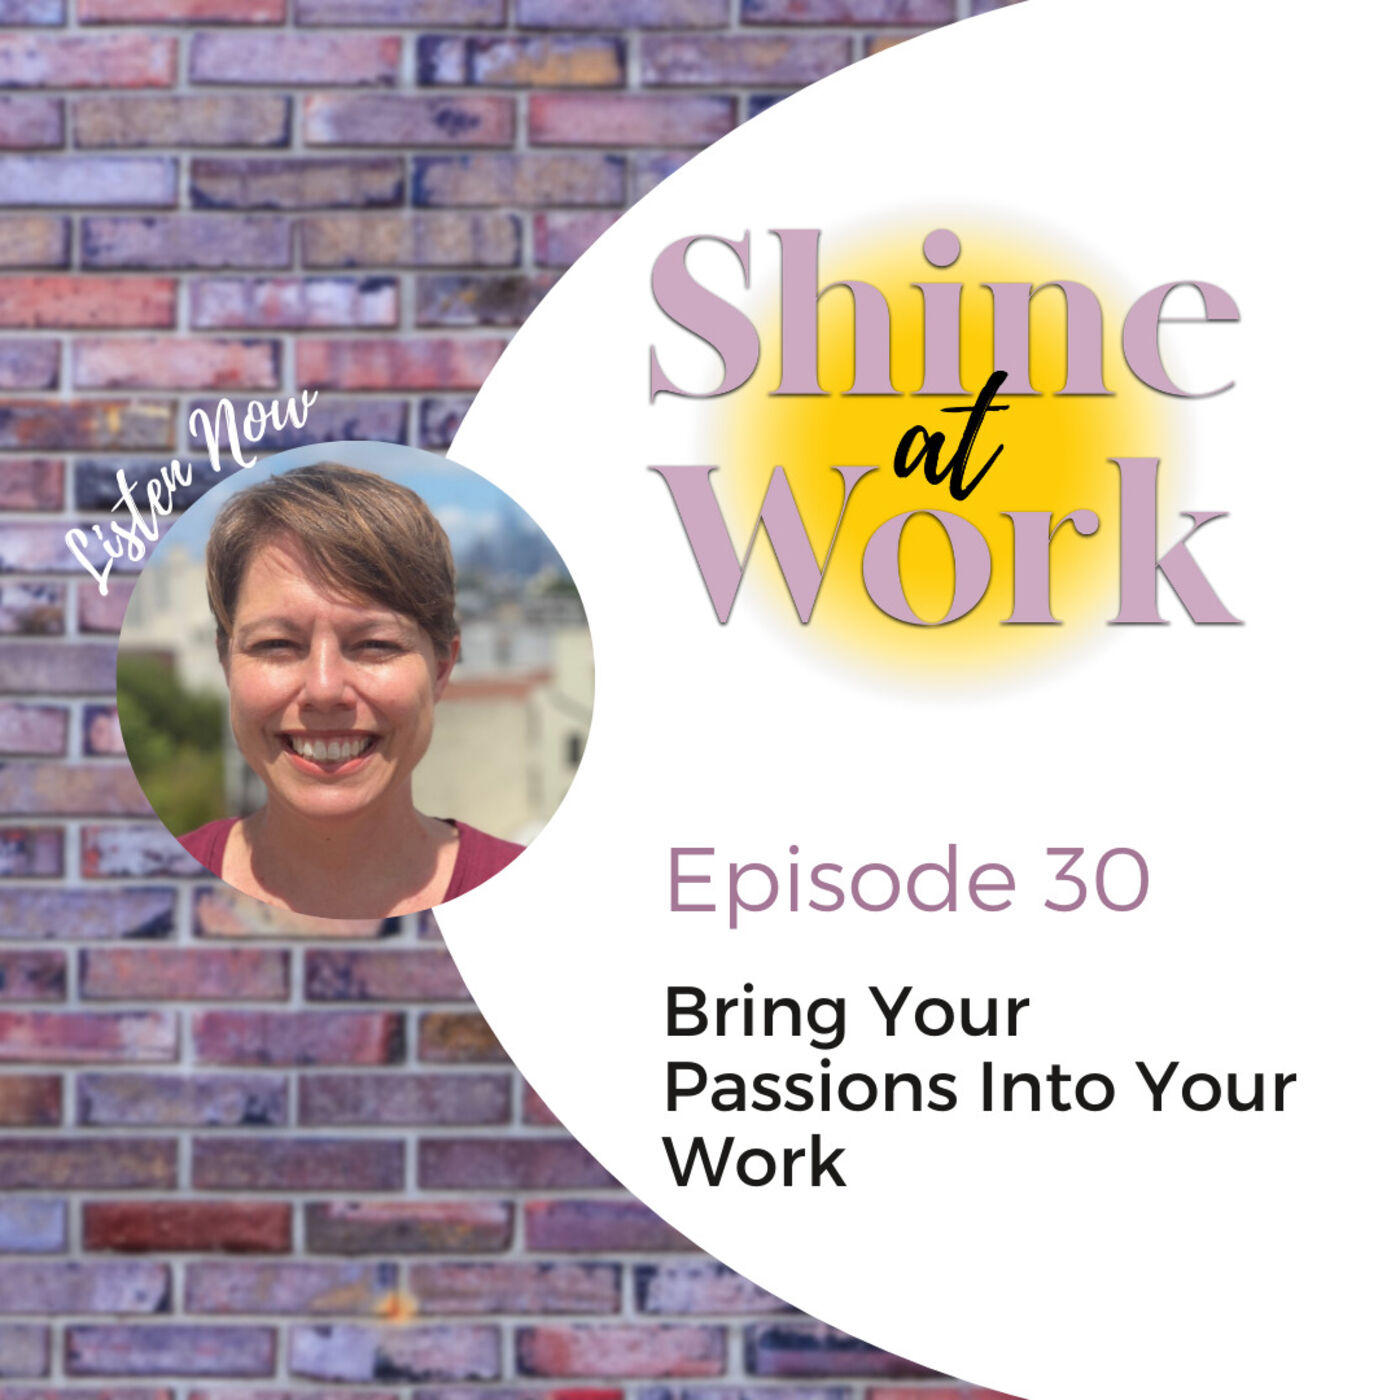 Episode 30 - Bring Your Passions Into Your Work